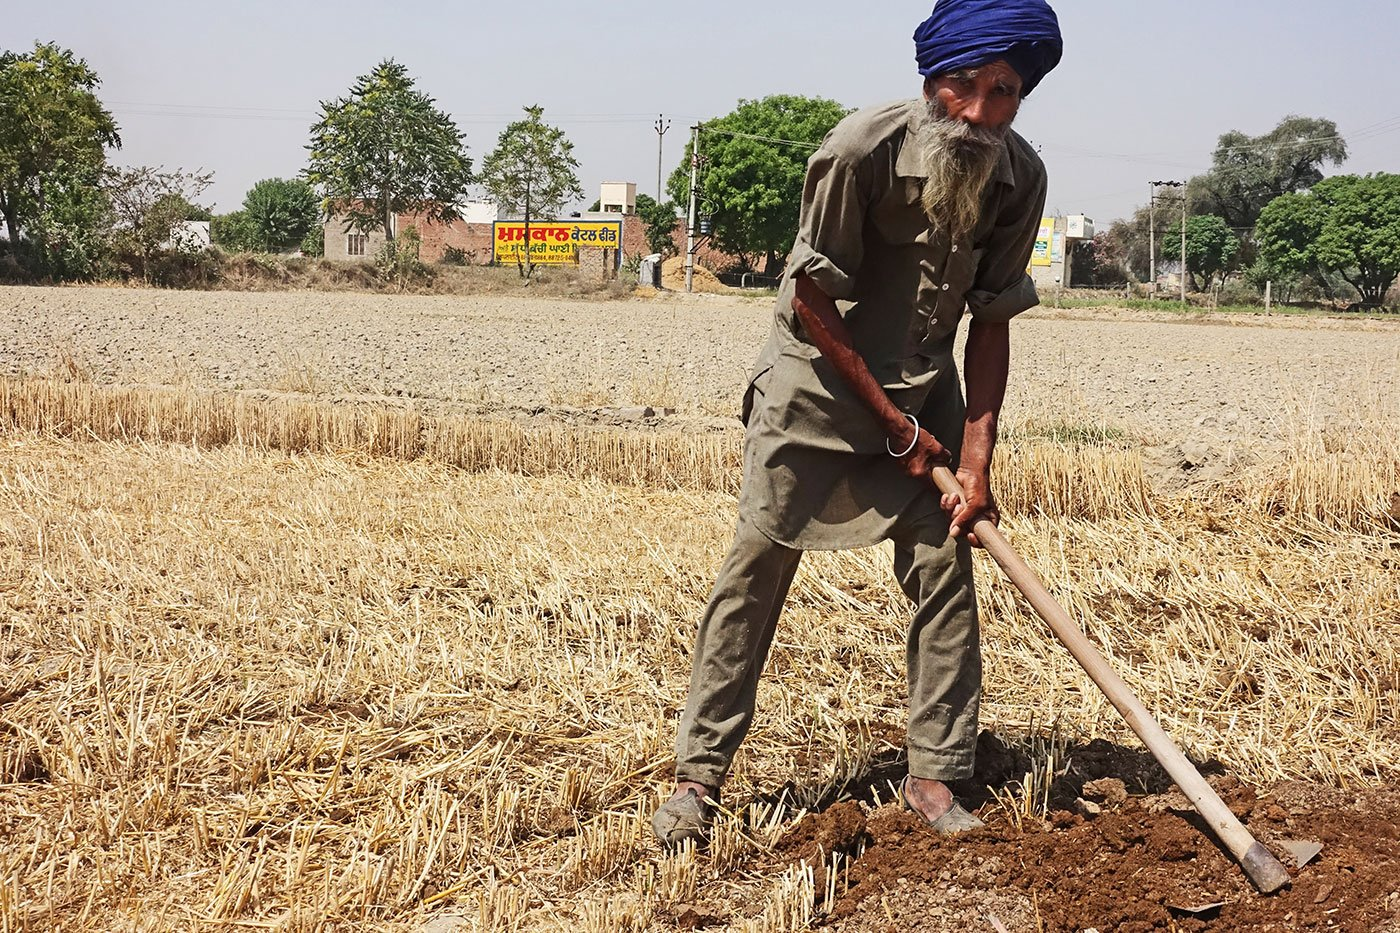 A Punjabi farmer in the field